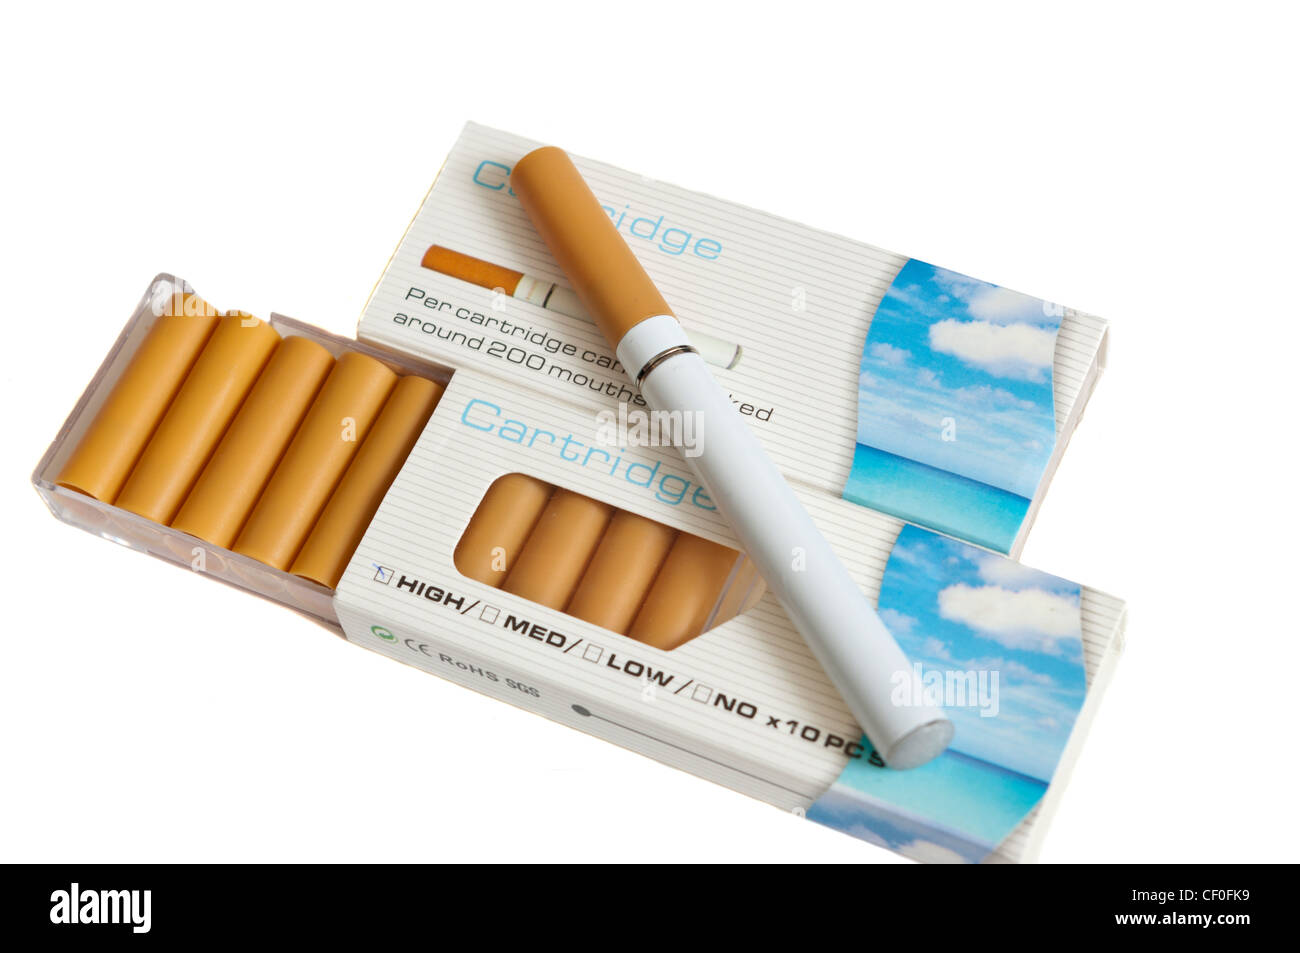 E Cigarette Electric Cigarette Kit Quitting Quit Smoking Nicotine Replacement - Stock Image